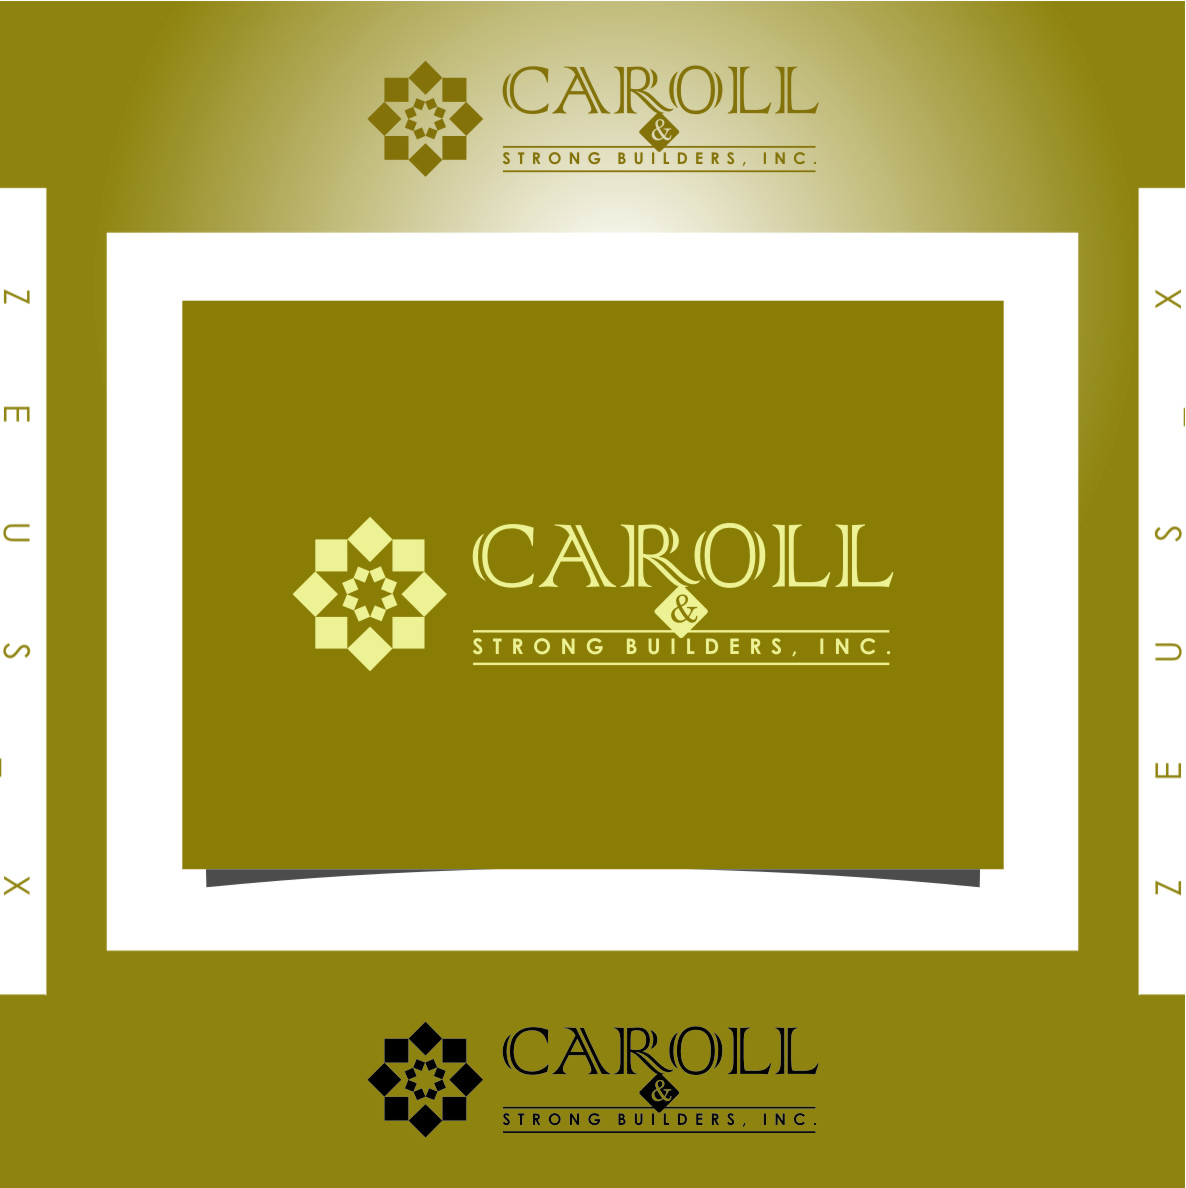 Logo Design by RasYa Muhammad Athaya - Entry No. 2 in the Logo Design Contest New Logo Design for Carroll & Strong Builders, Inc..